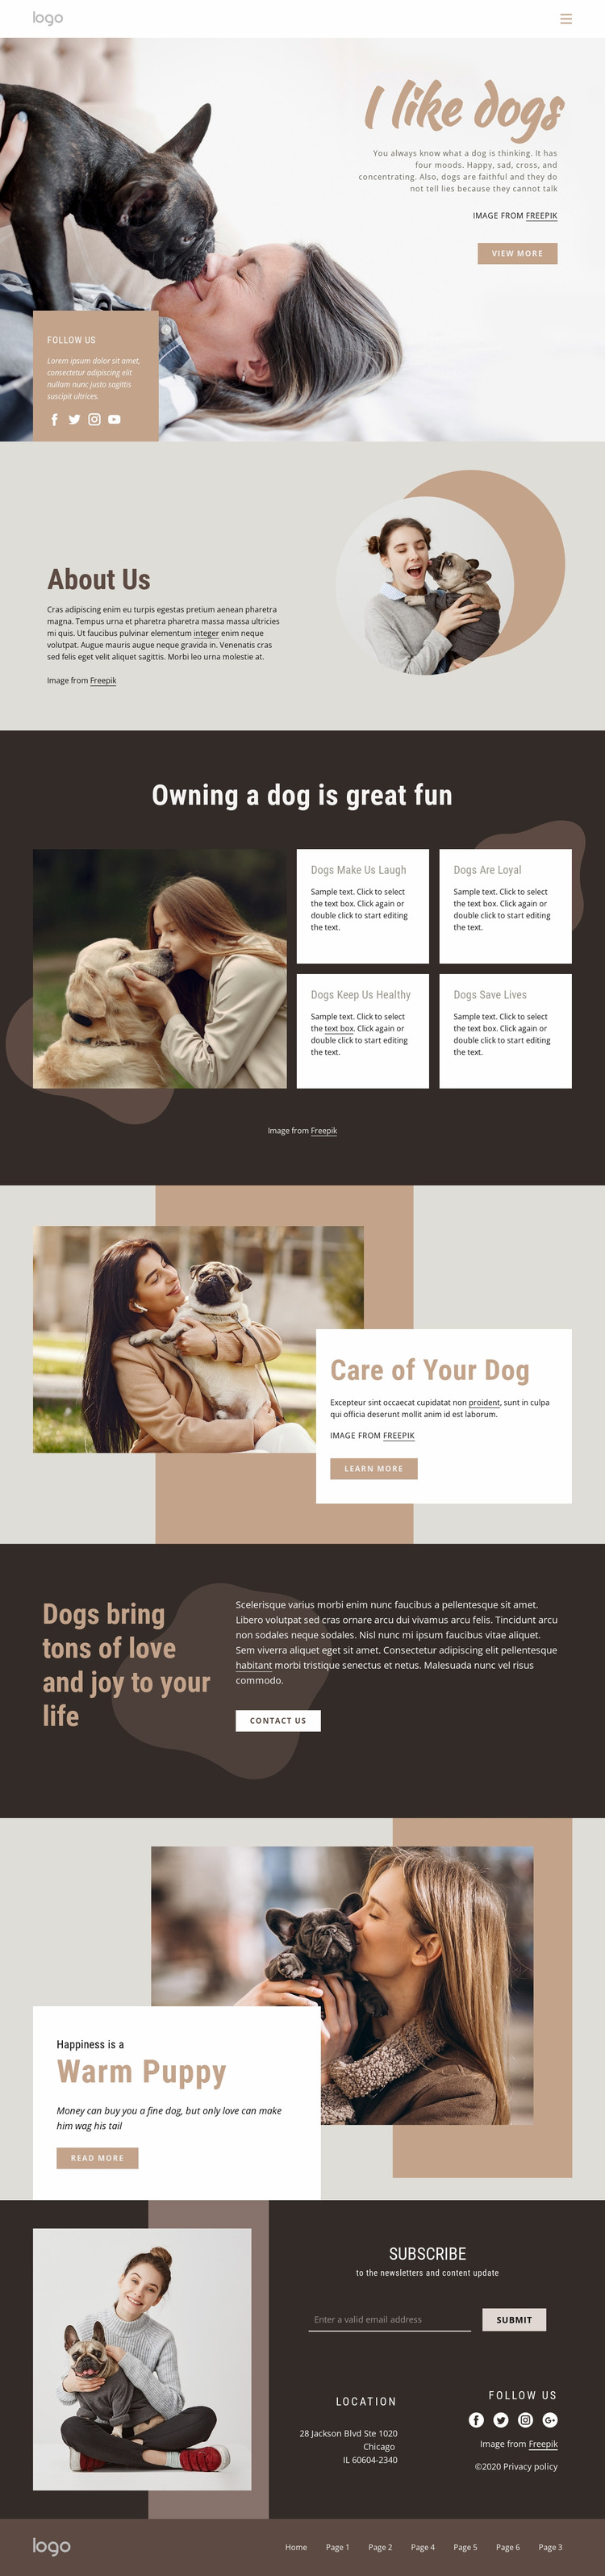 All about dogs Html Website Builder